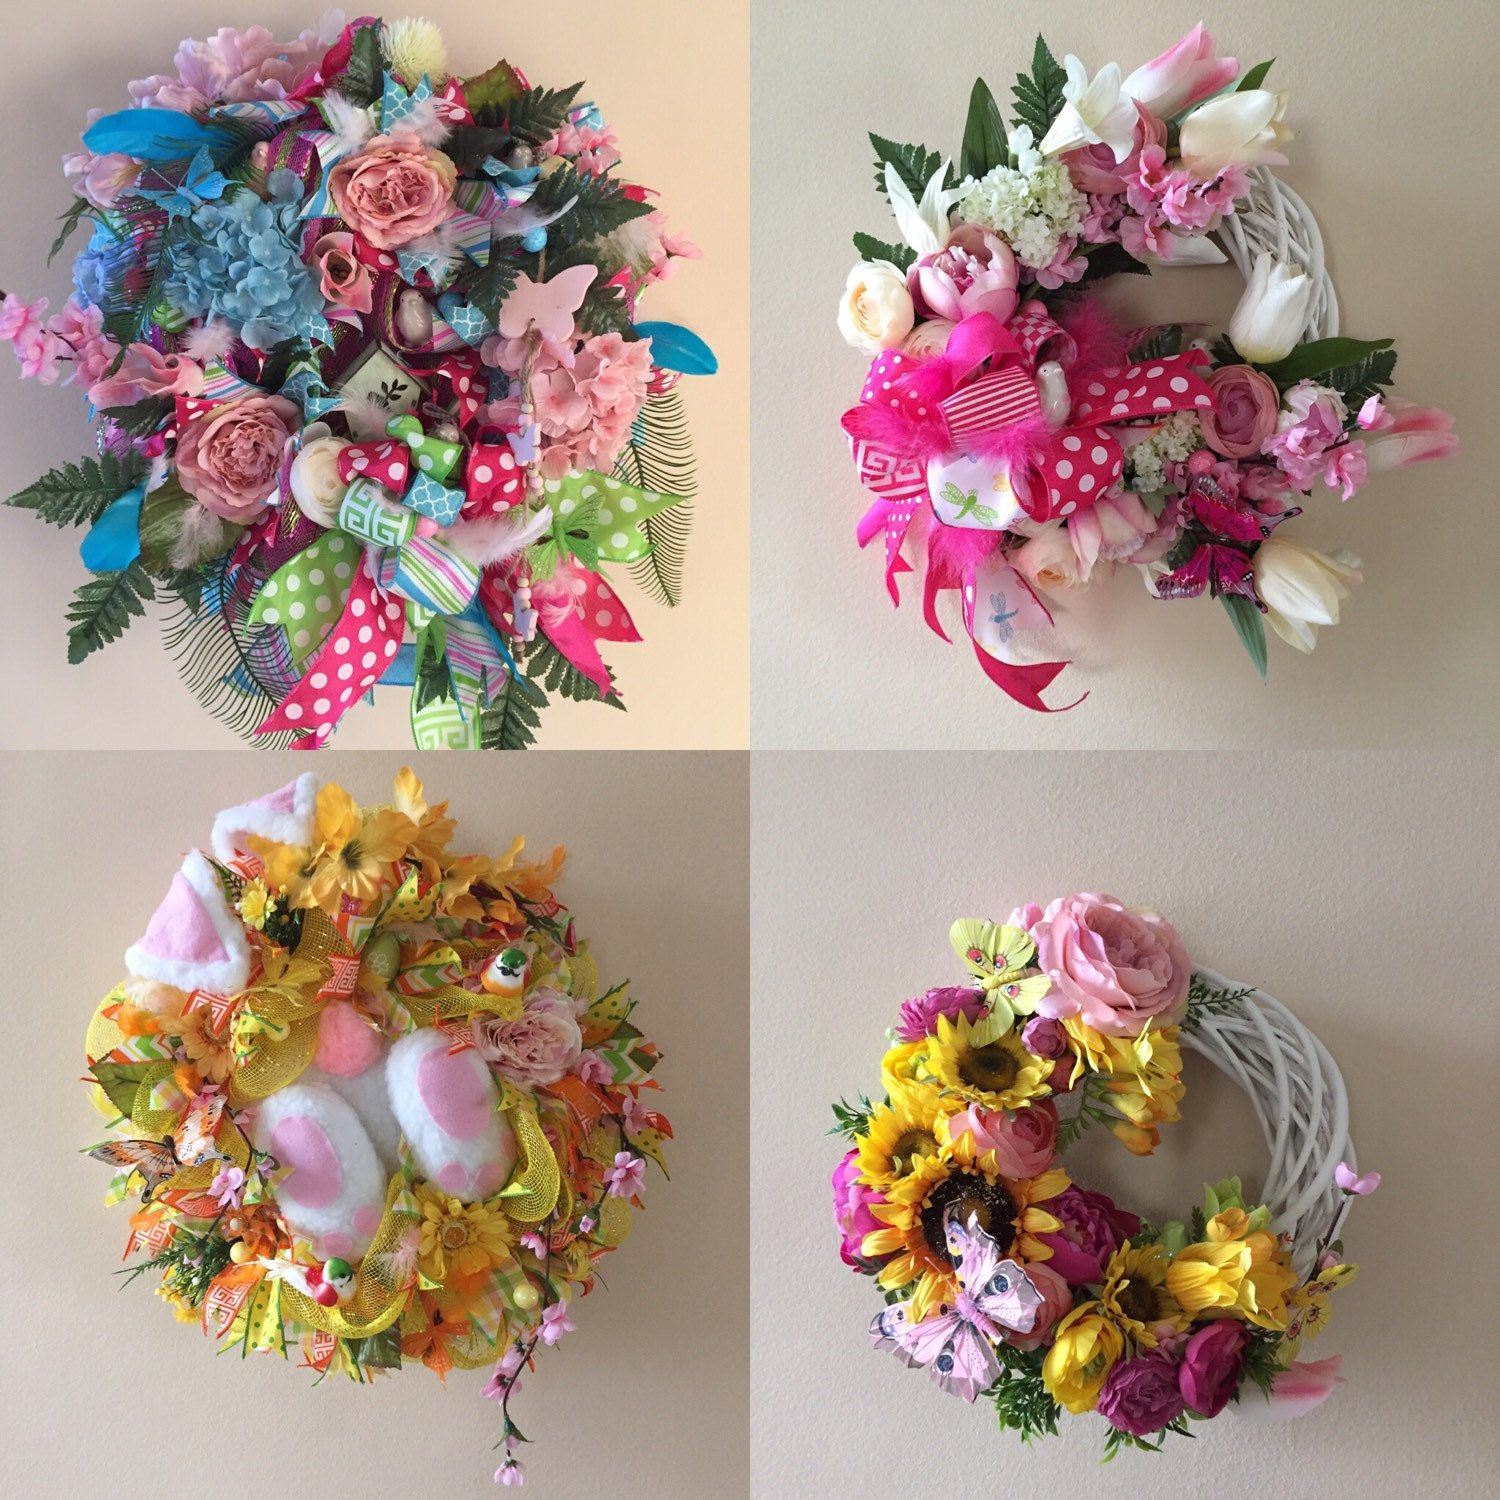 Awesome Bunny Wreath And More Great For Easter Or Spring